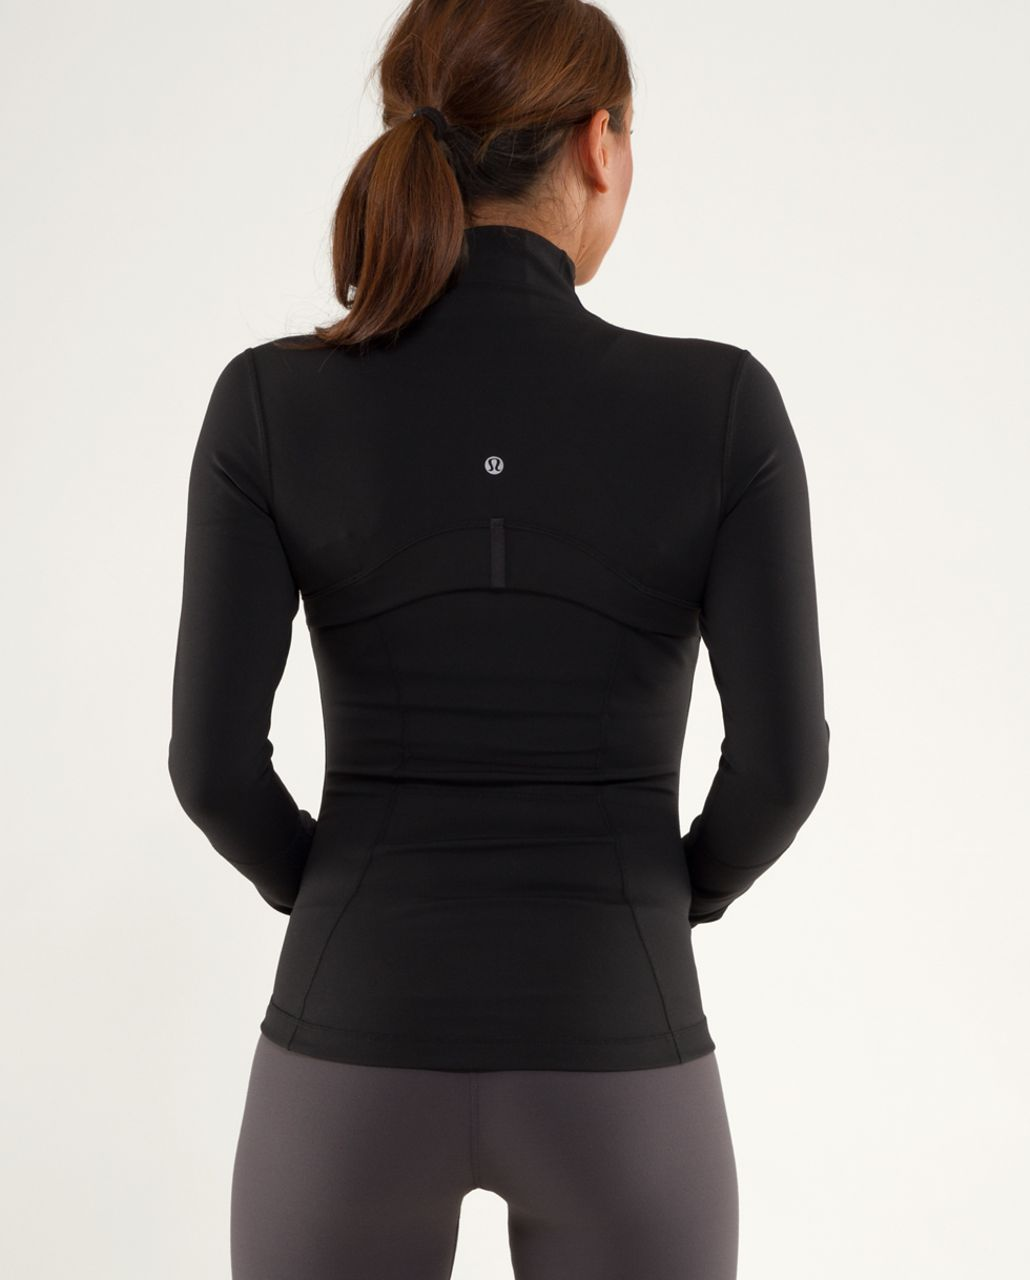 Lululemon Define Jacket *Silver - Black